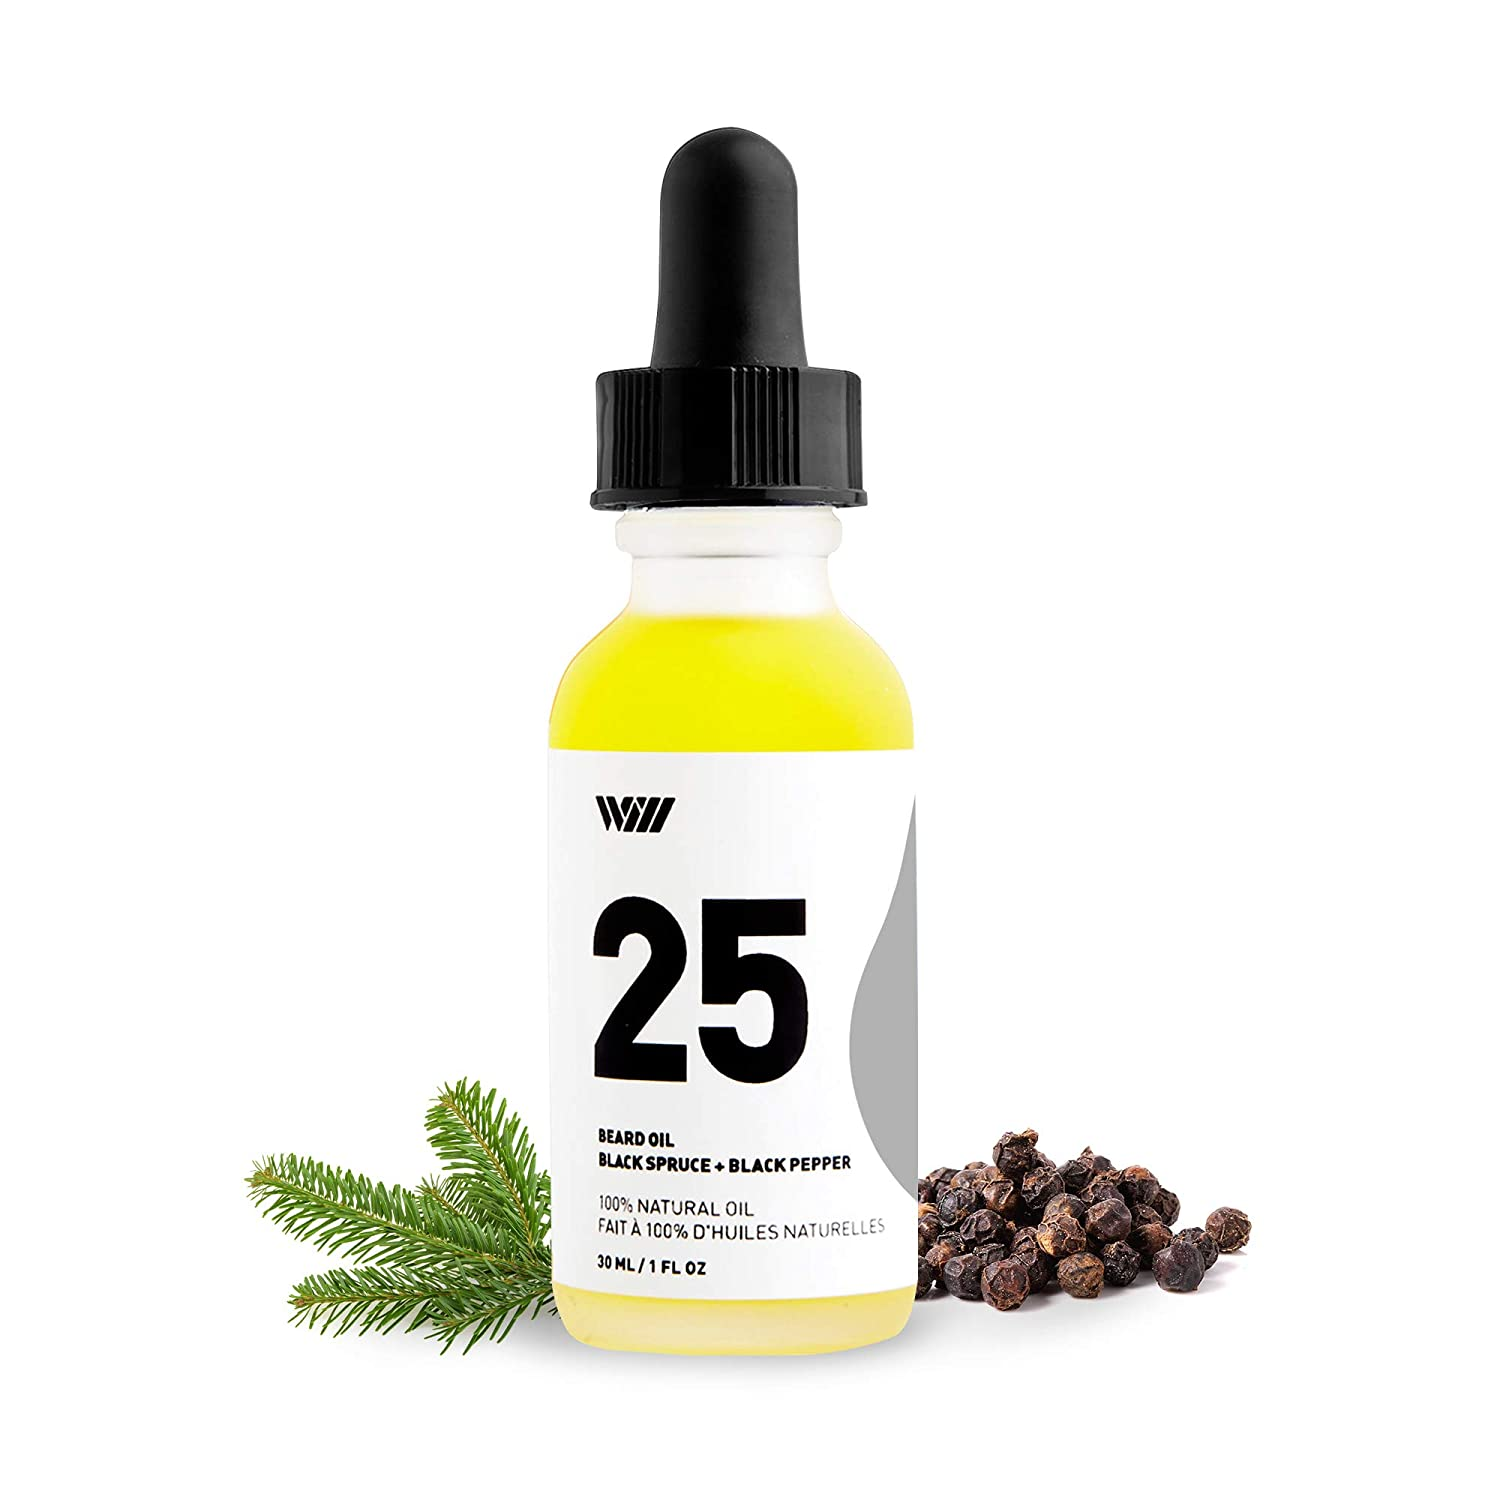 25 Beard Oil Black Spruce and Black Pepper, 100% All-Natural Essential Oil-Based Scented Beard Oil for Men (Bergamot Essential Oil, Organic Jojoba Seed, Grapeseed, and Camellia Oils) – Way of Will